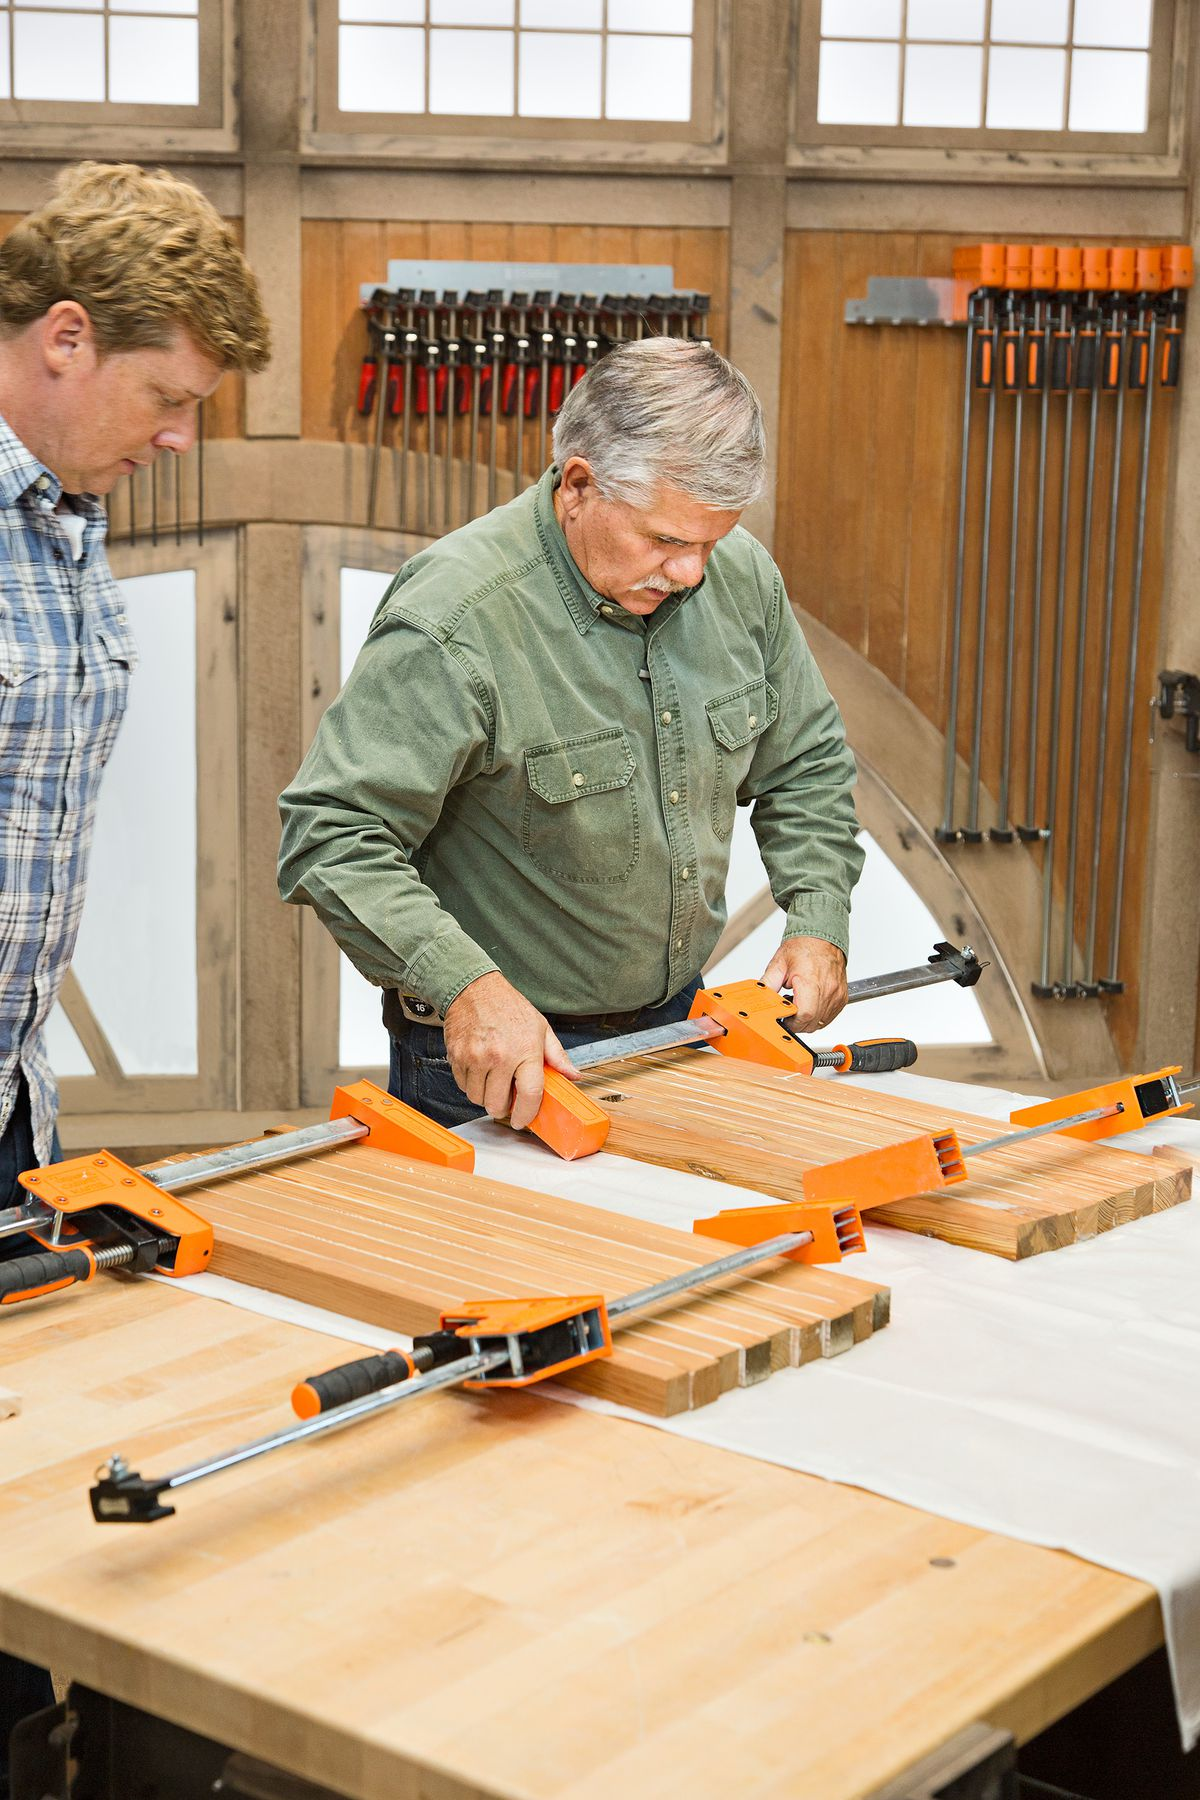 Person clamping the panels together to allow the glue to on the wood to dry.